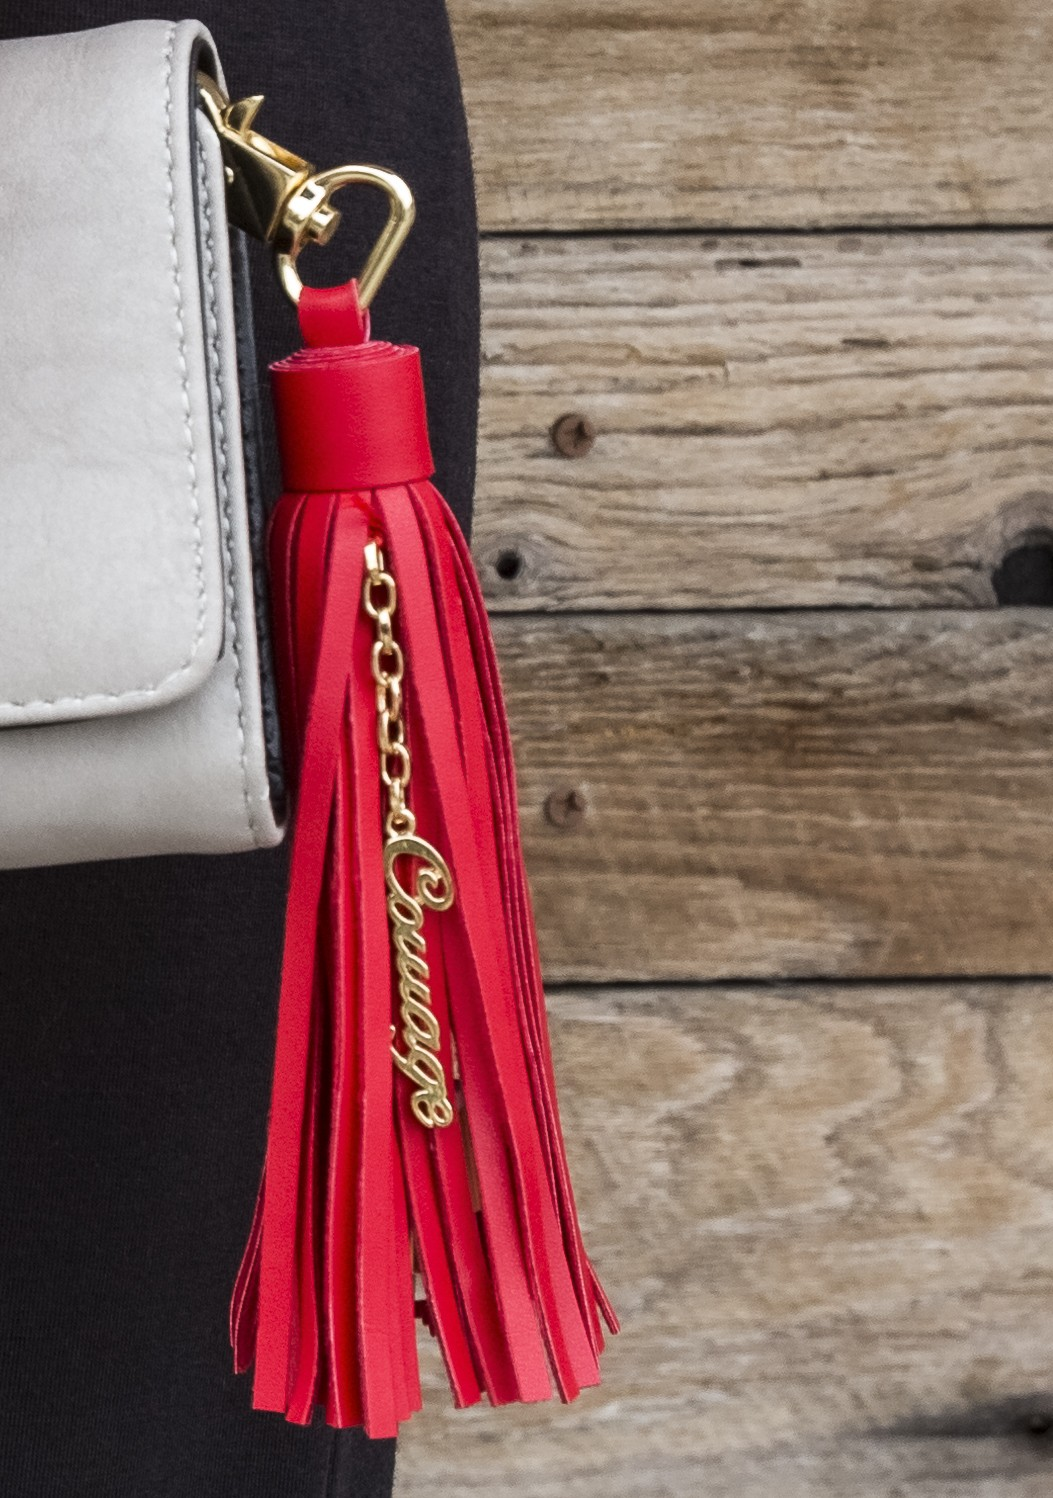 Tassel USB Cable Charger Keychain - Courage